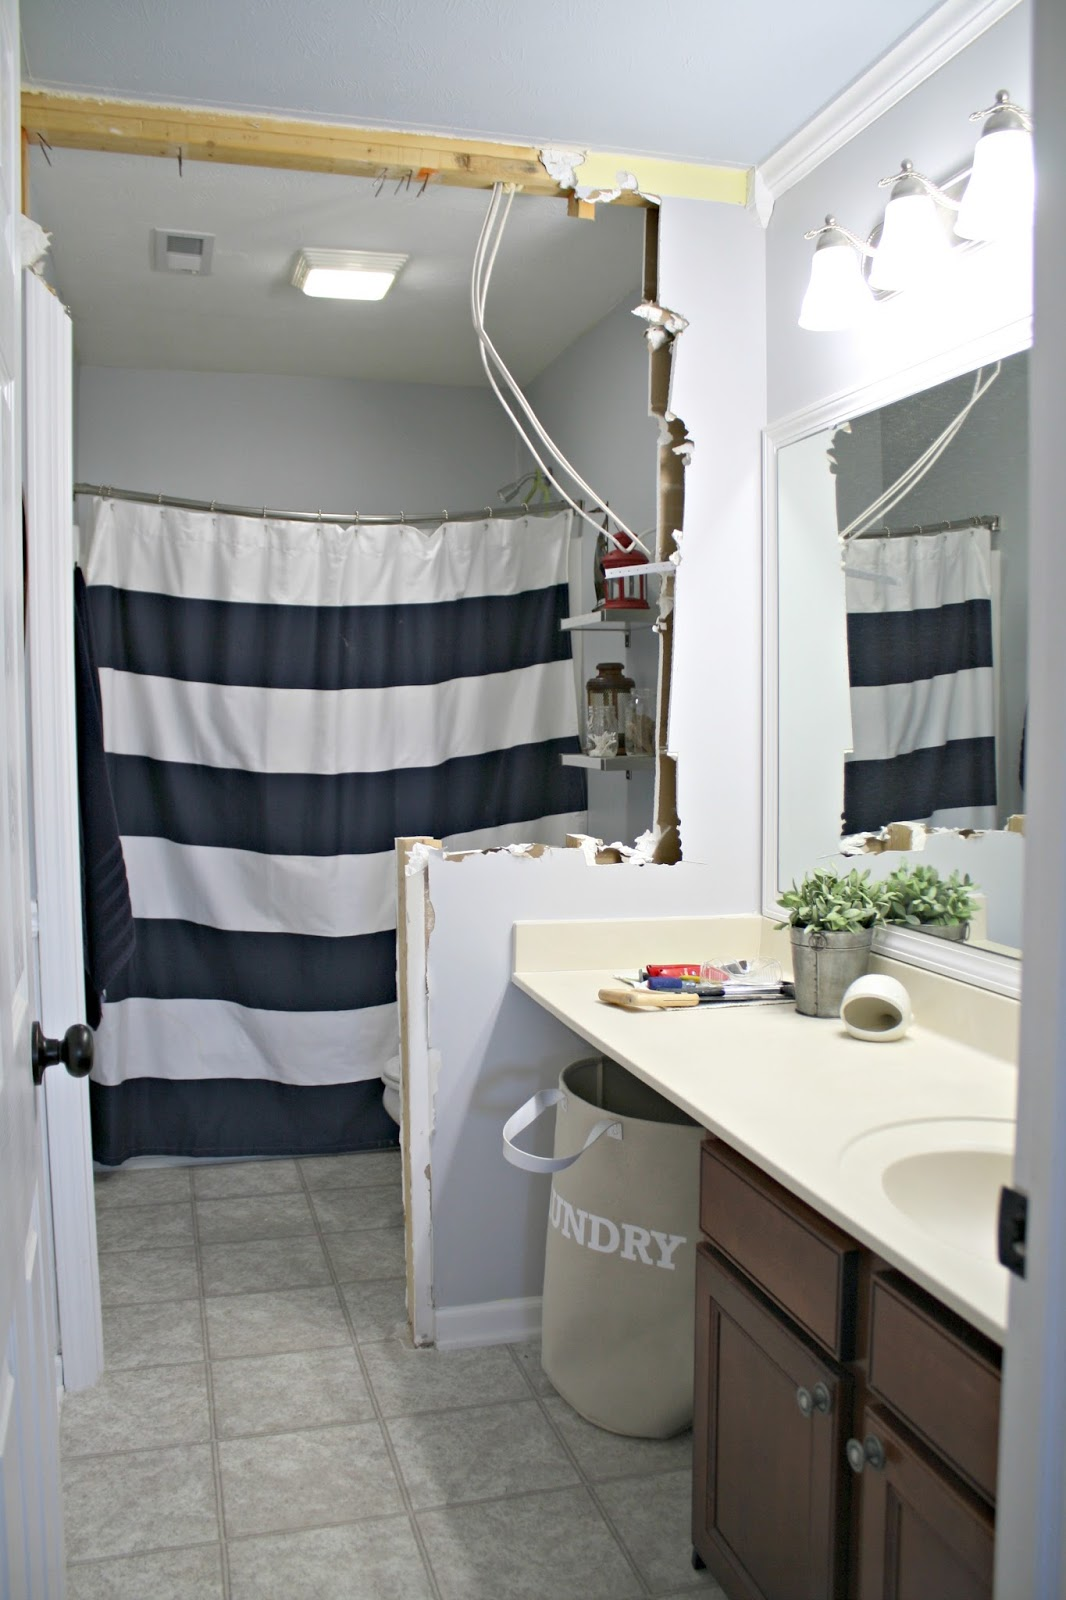 The Bathroom Renovation Has Started From Thrifty Decor Chick